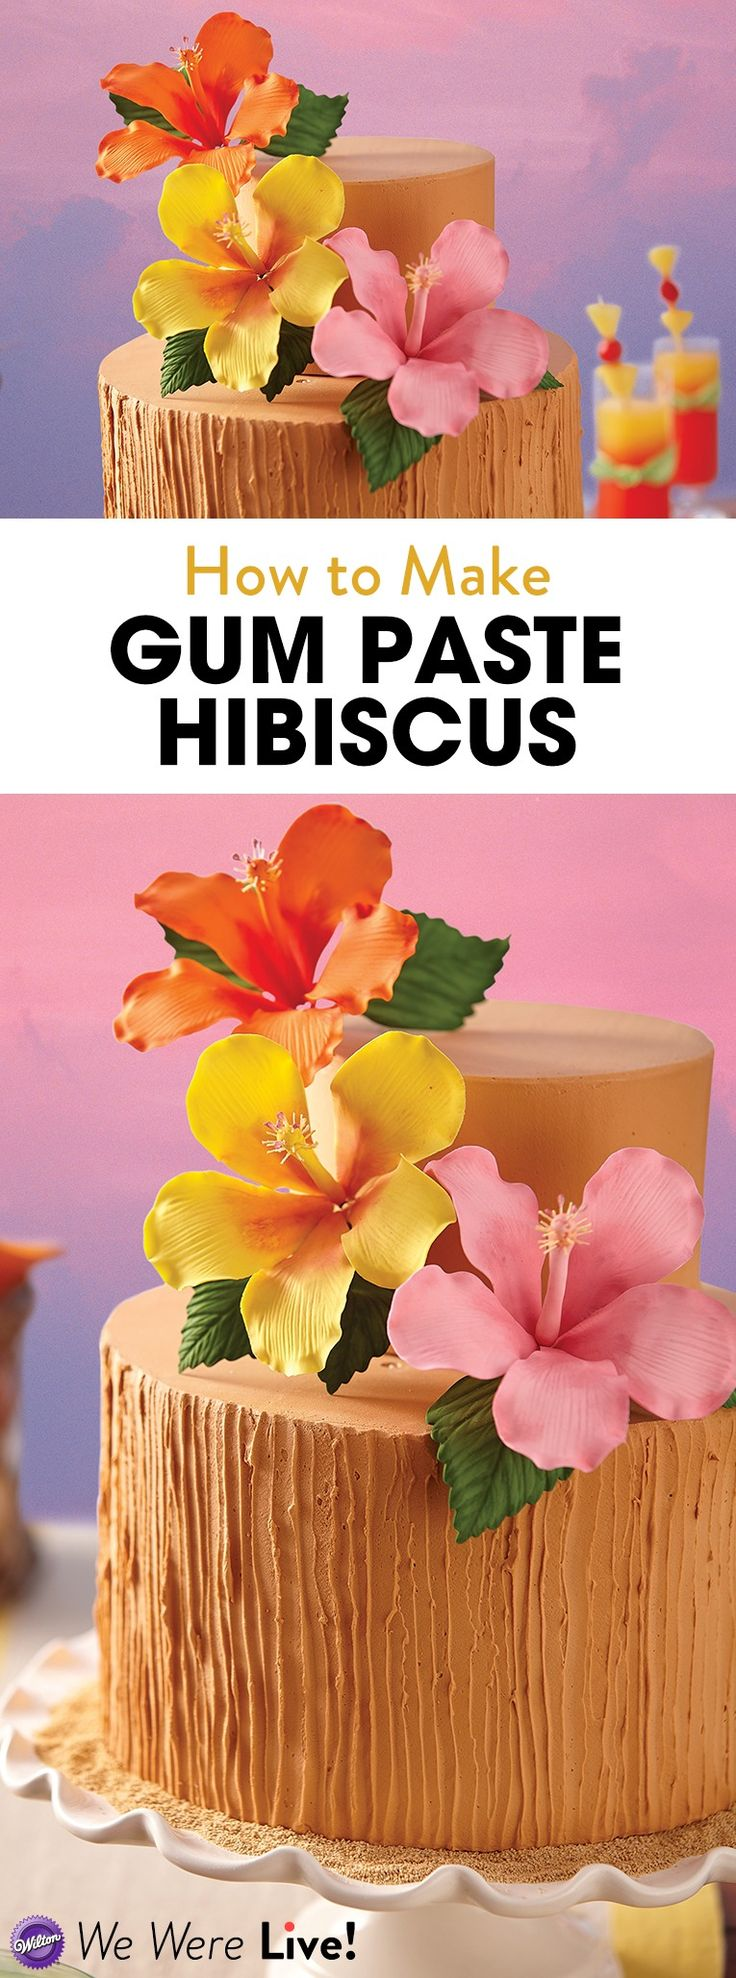 In this episode of our Facebook Live, you'll learn how to make pretty hibiscus flowers out of gum paste.